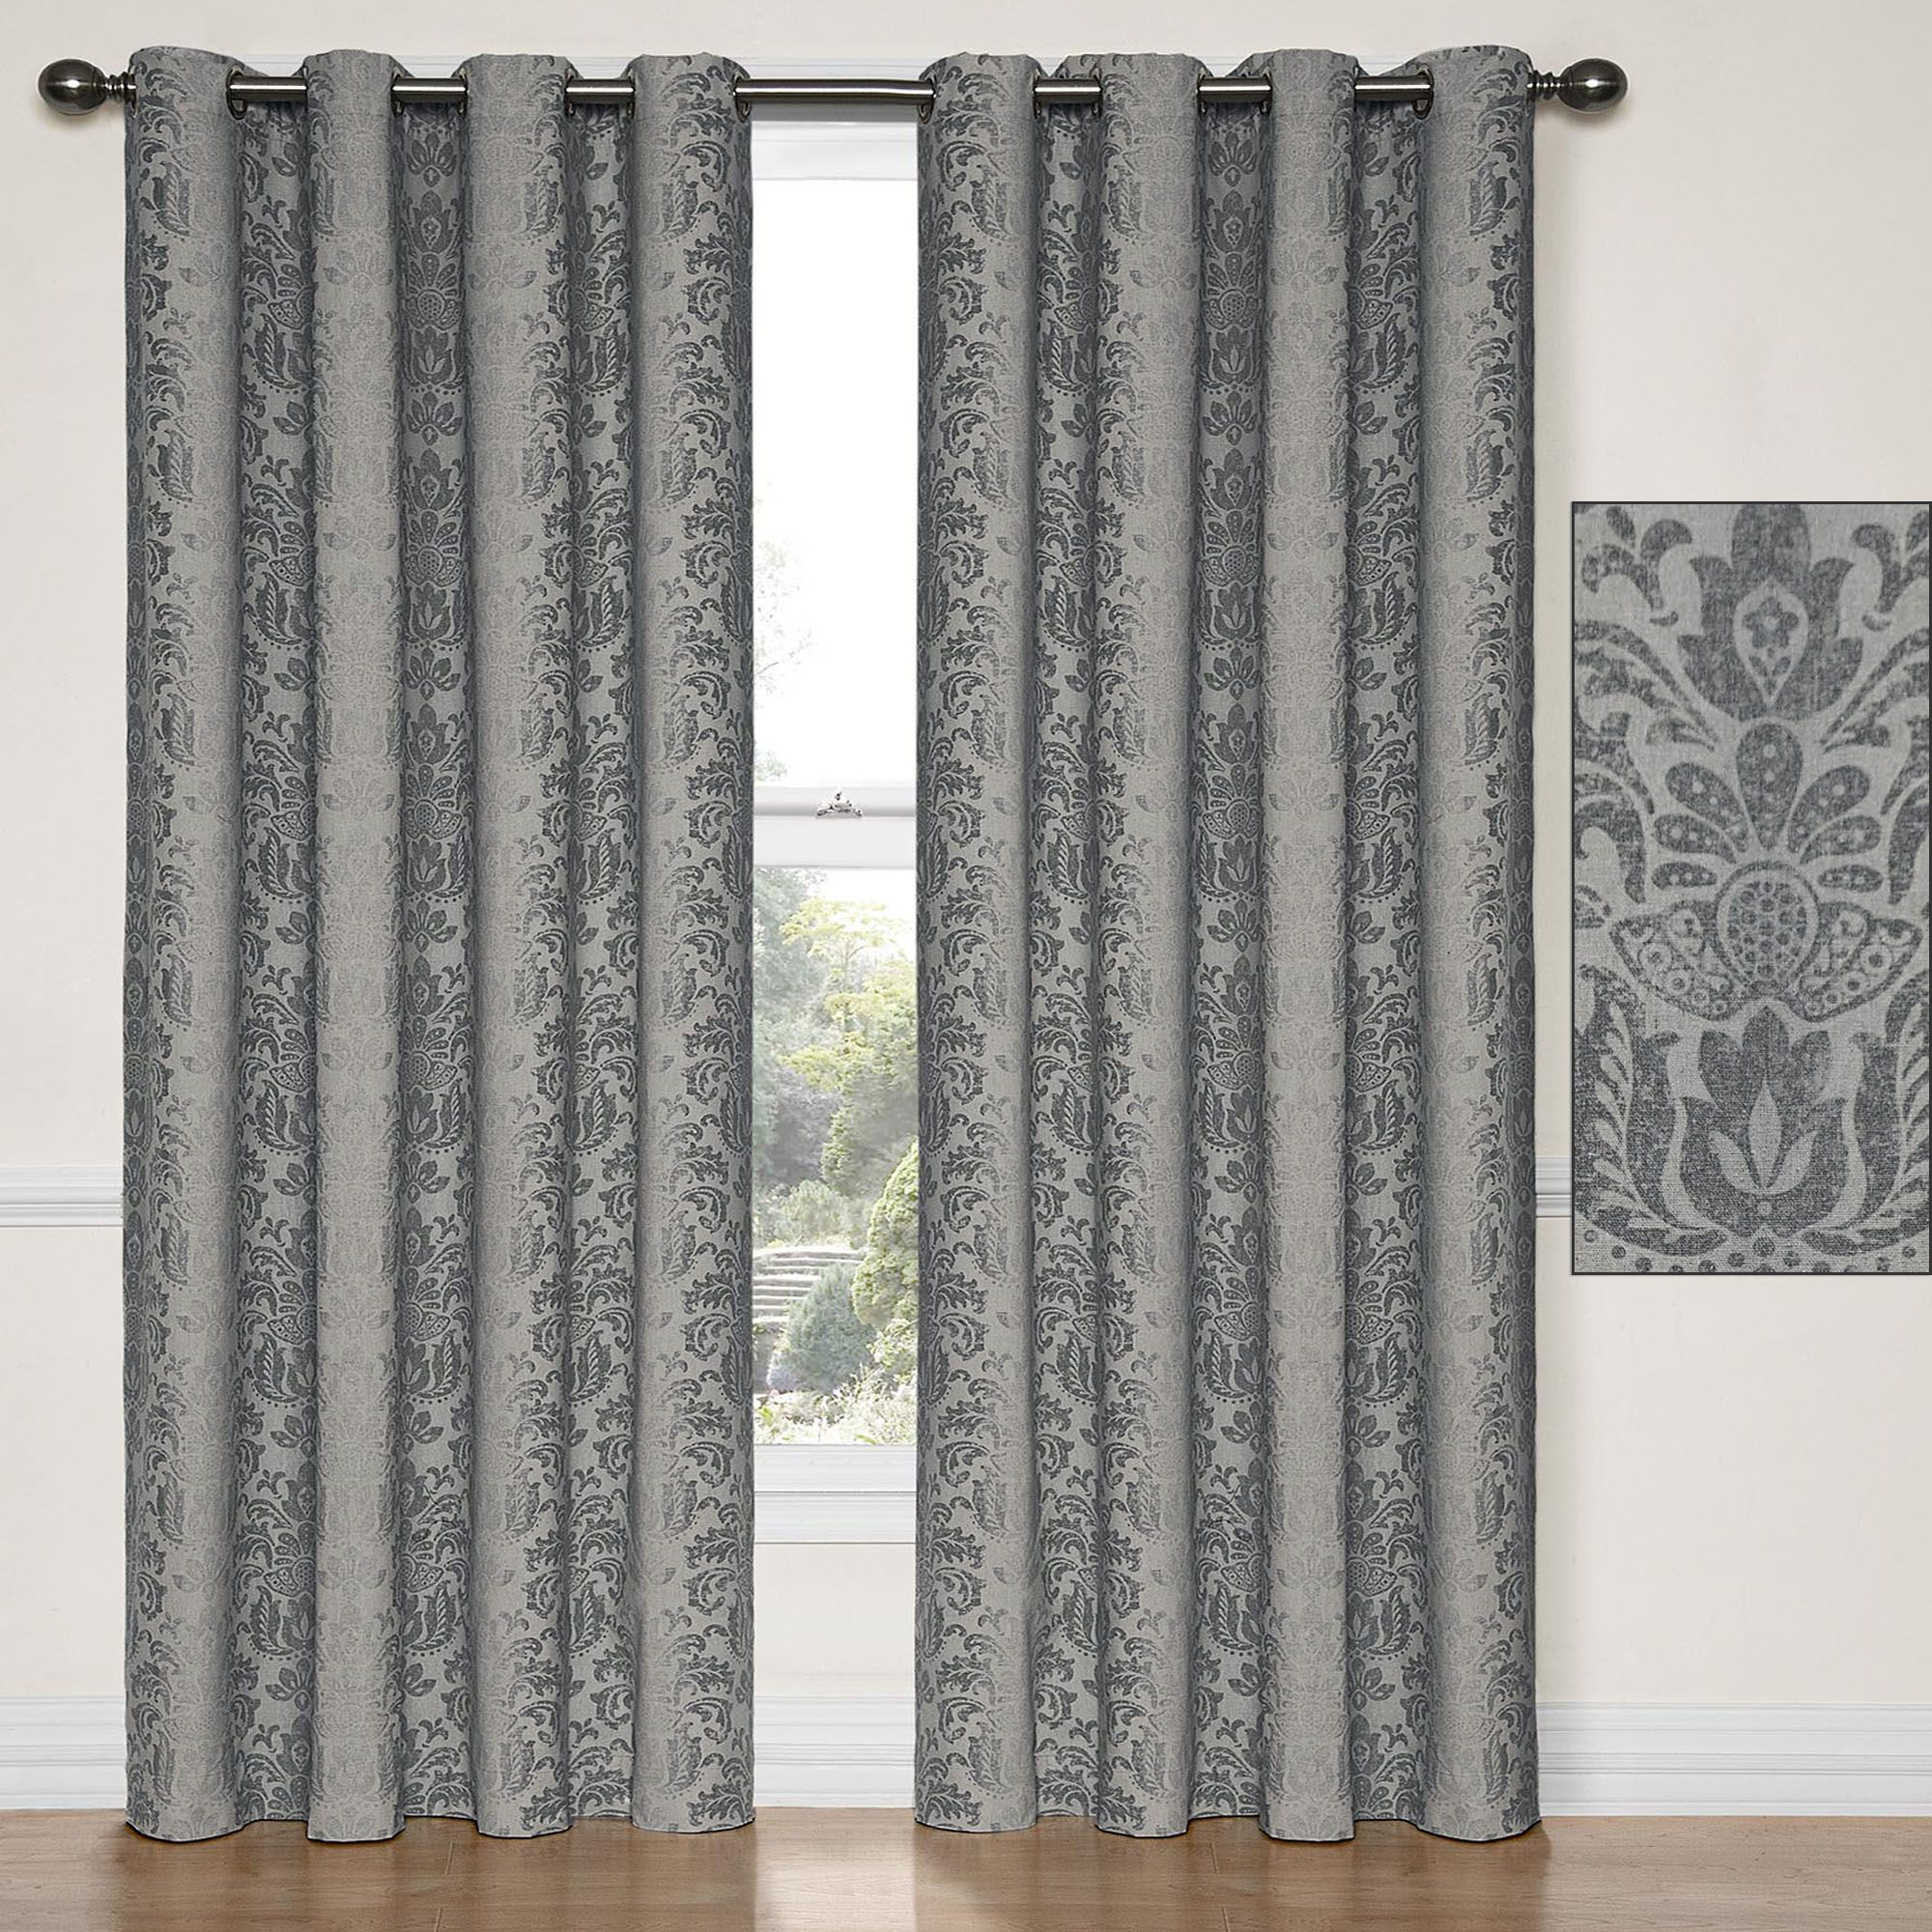 curtain curtains charcoal shower yellow decor gray leah lush b com inches x amazon